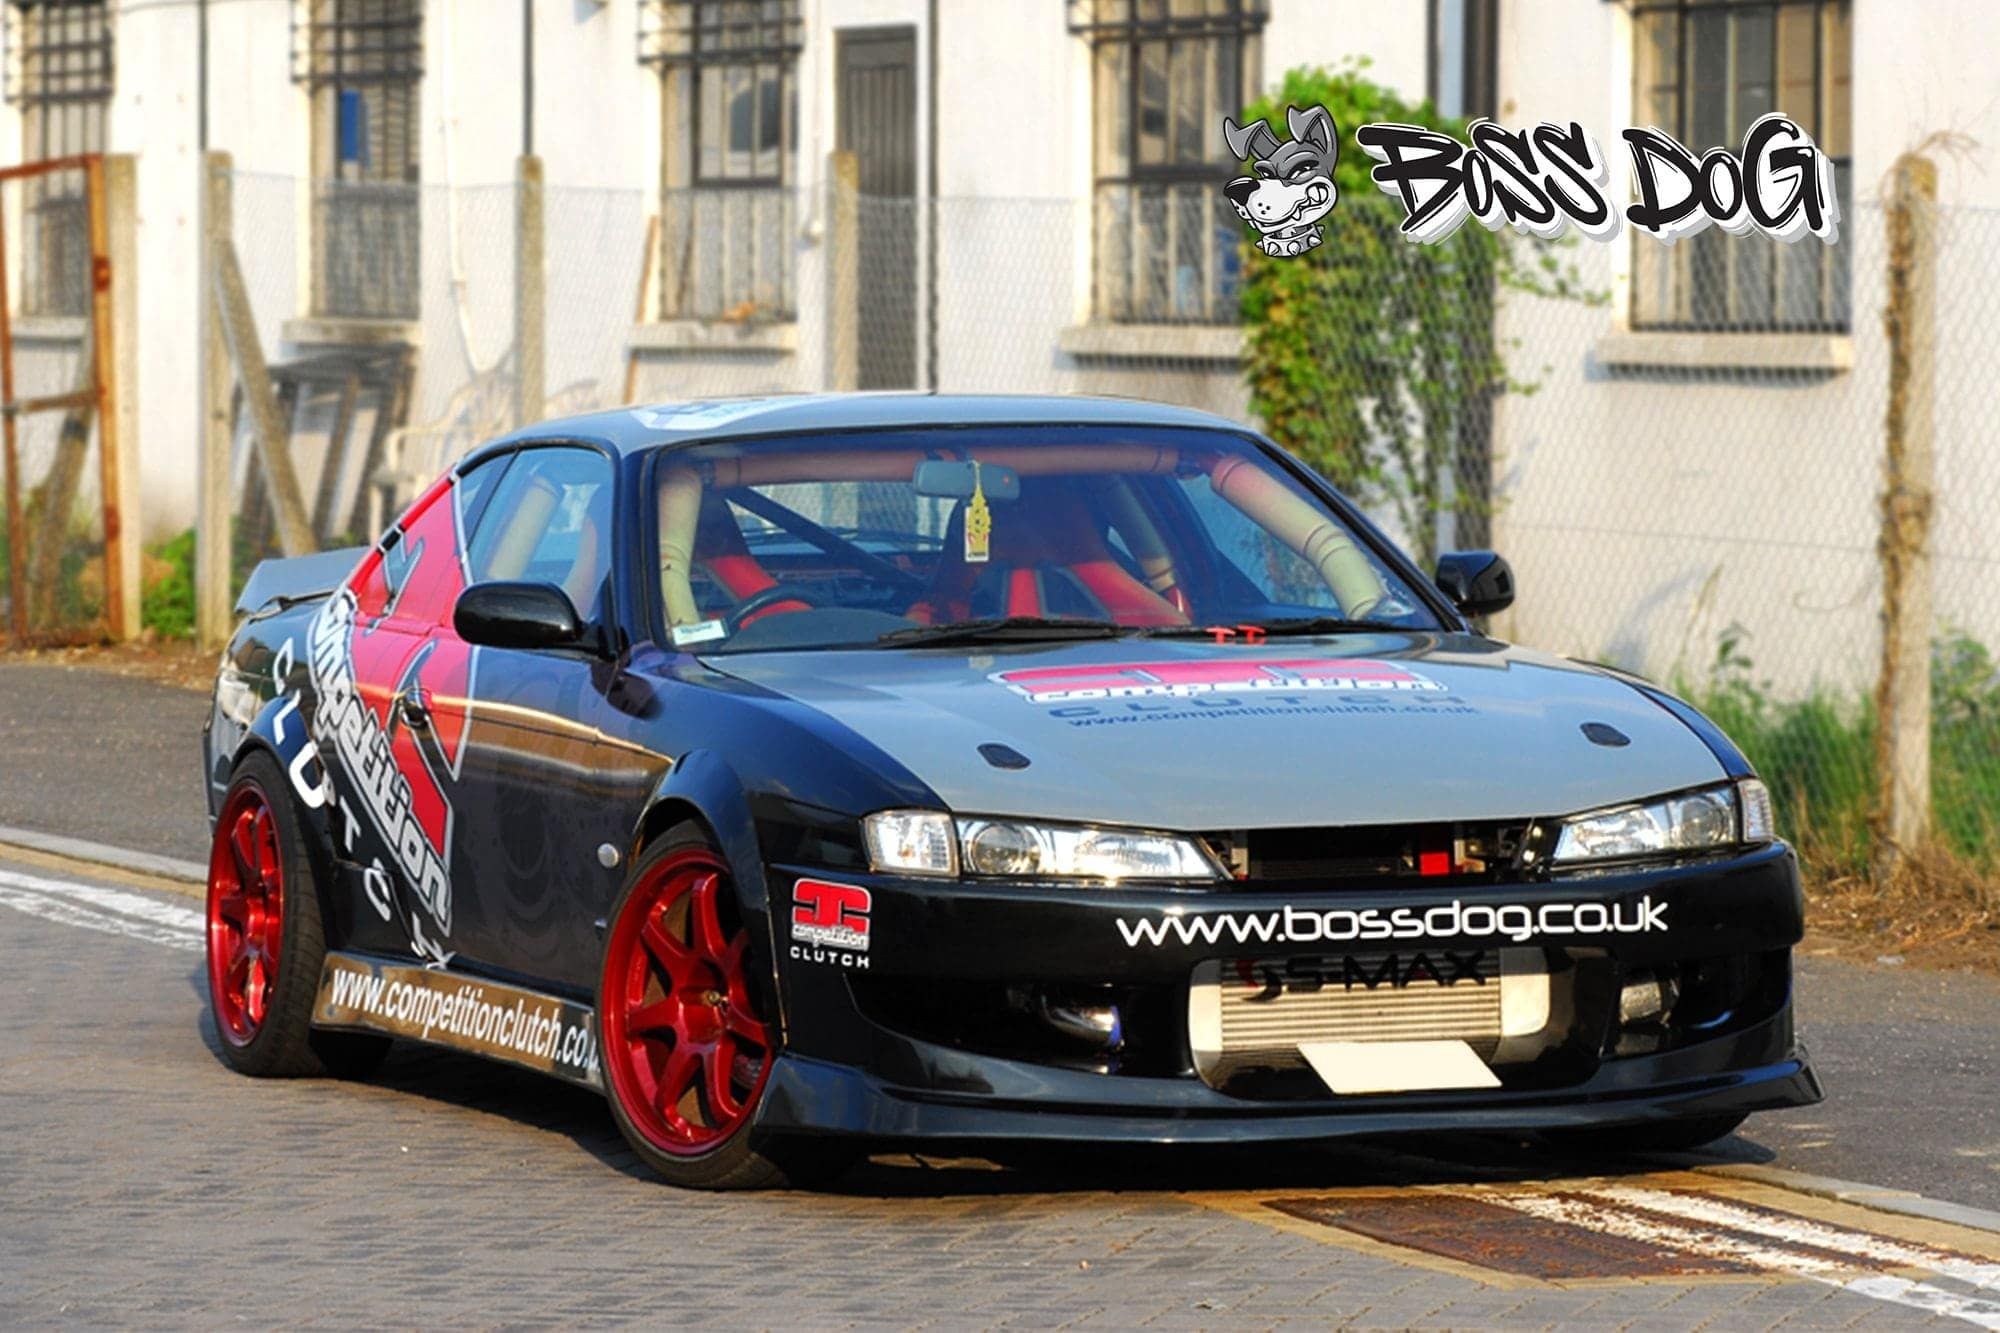 Nissan Skyline R32 drift car wrapped in printed graphics